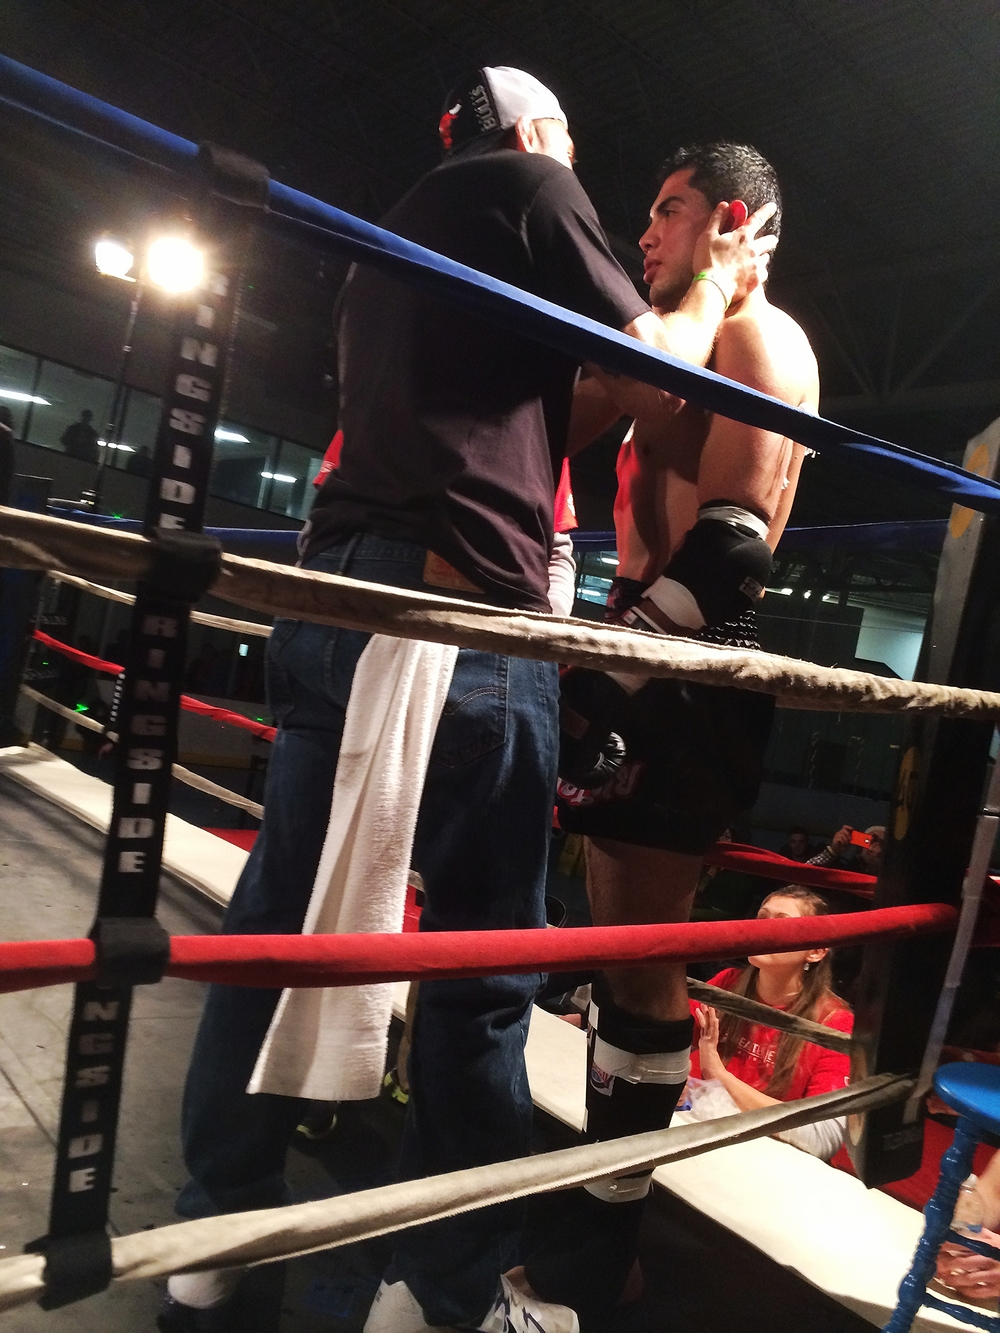 Raul in the ring back on his feet after the knock out.